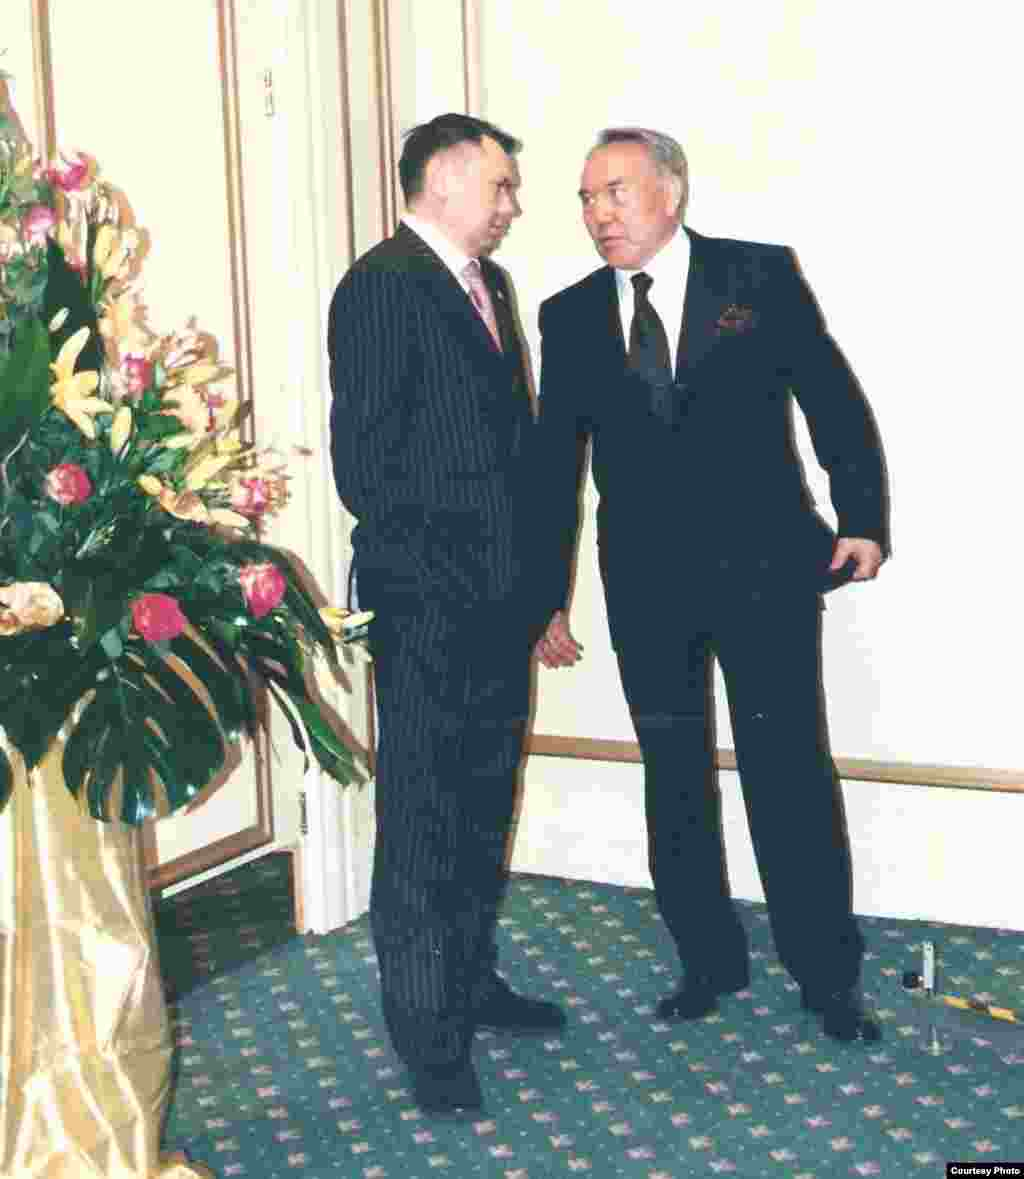 Aliev and his father-in-law in 2001. In June 2014, Aliev was arrested in Vienna. His lawyers said he had turned himself in. Austrian authorities charged him with involvement in the killings of two Kazakh bankers in 2007.